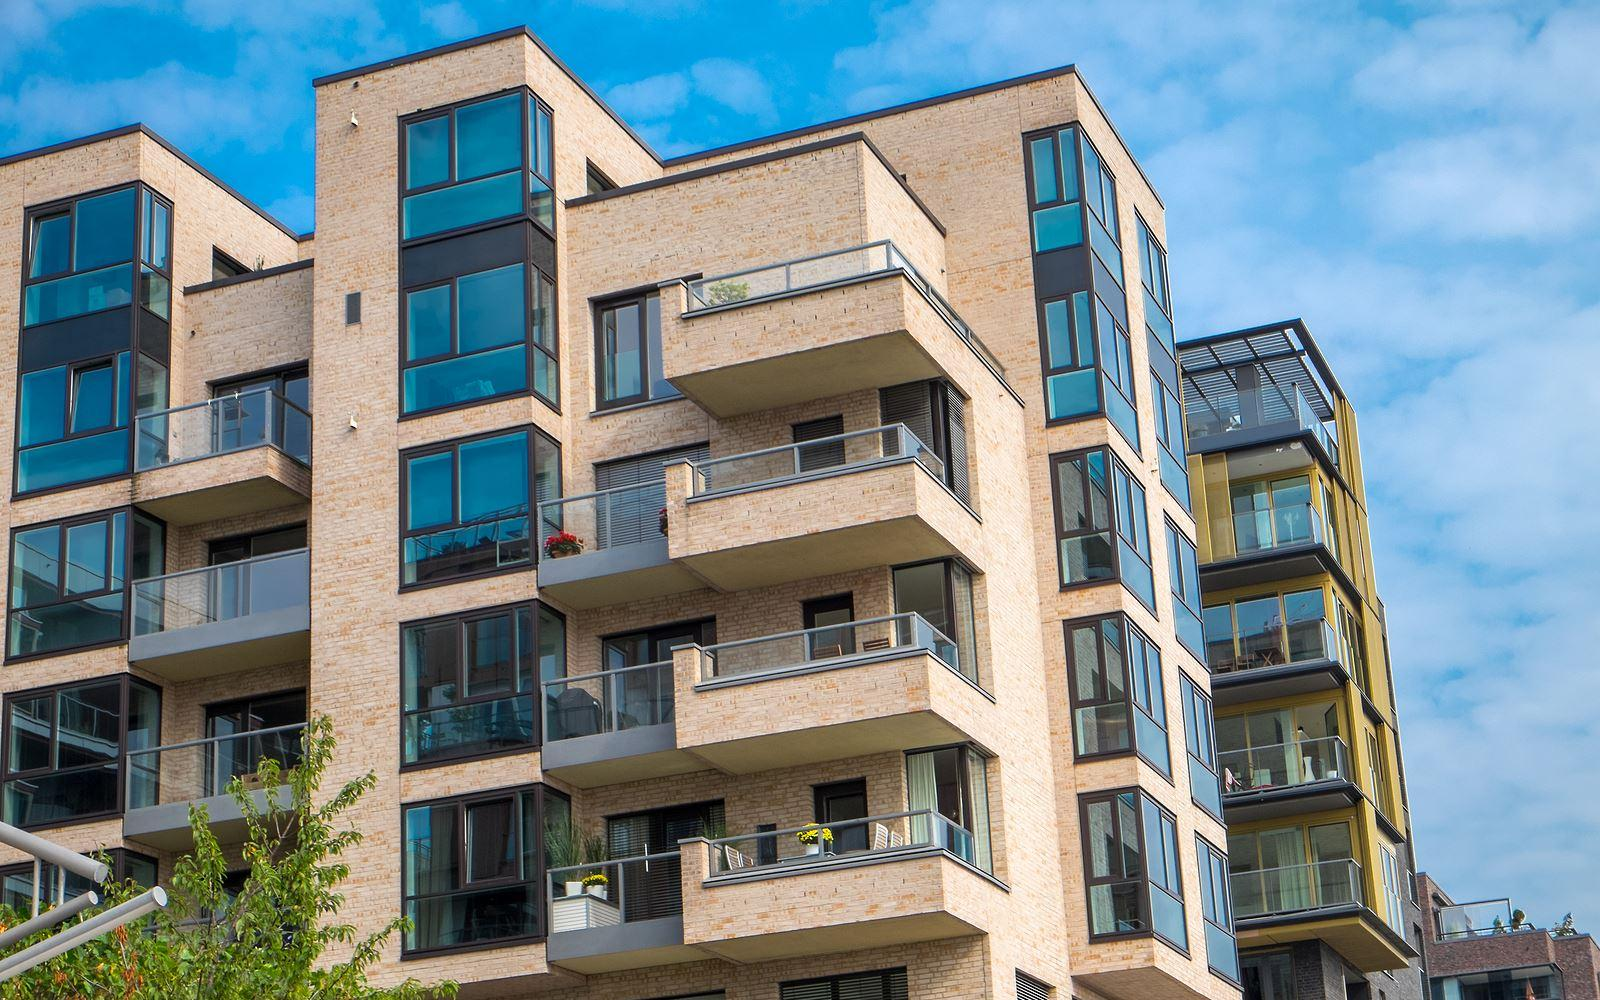 What Are the Best Multifamily Markets 2019 with High Cap